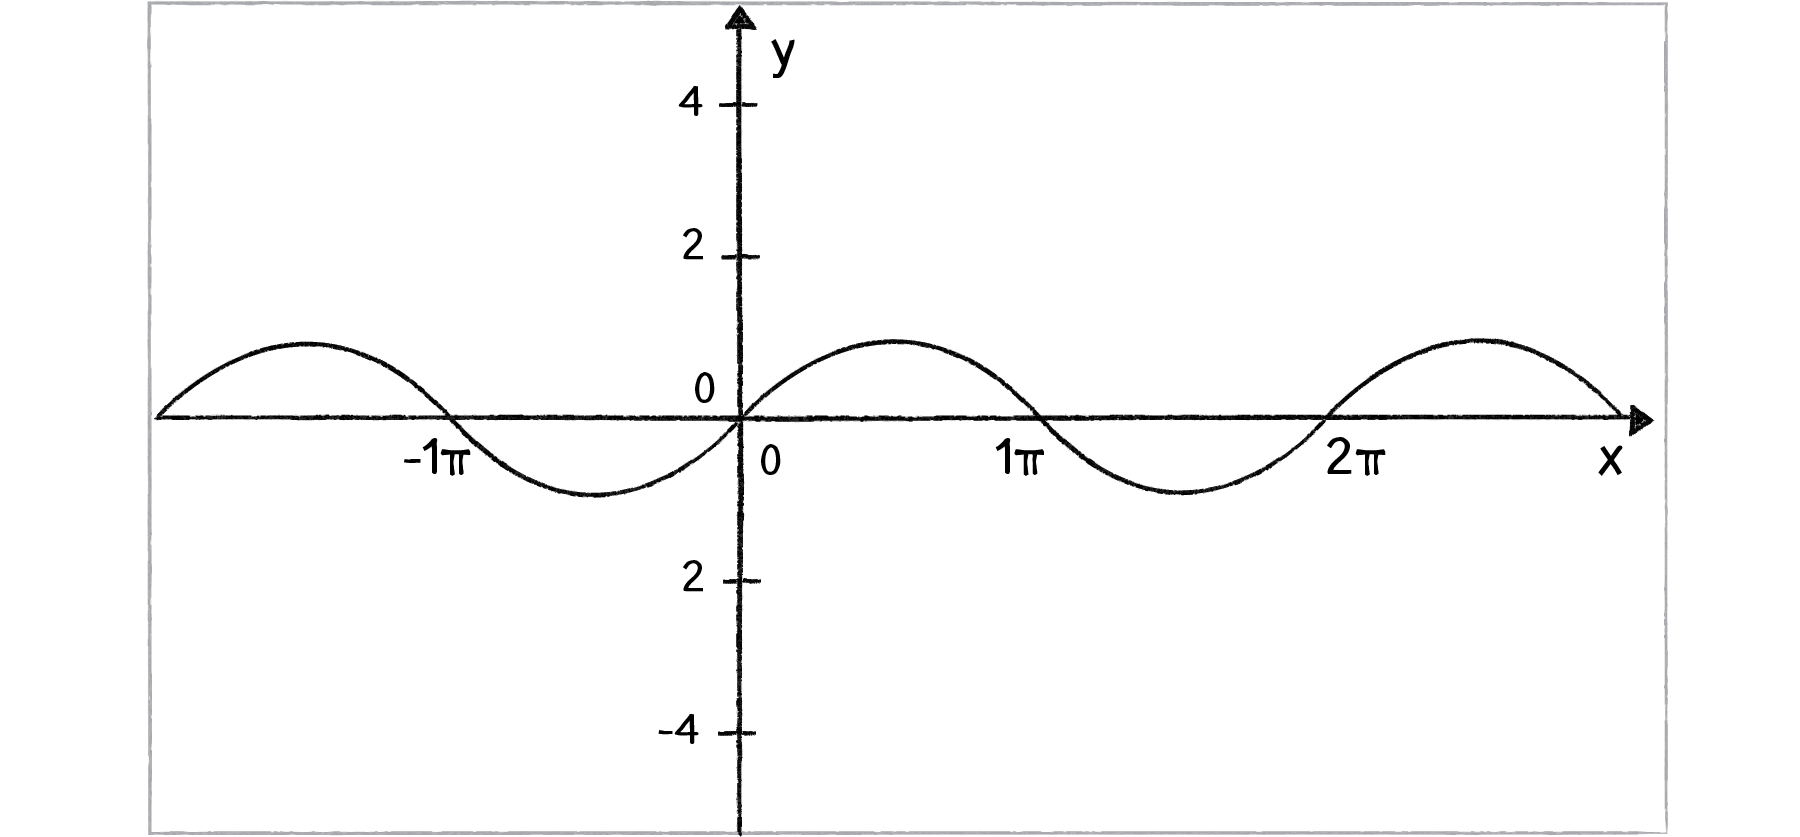 Write An Equation Of The Cosine Function With Amplitude Pi